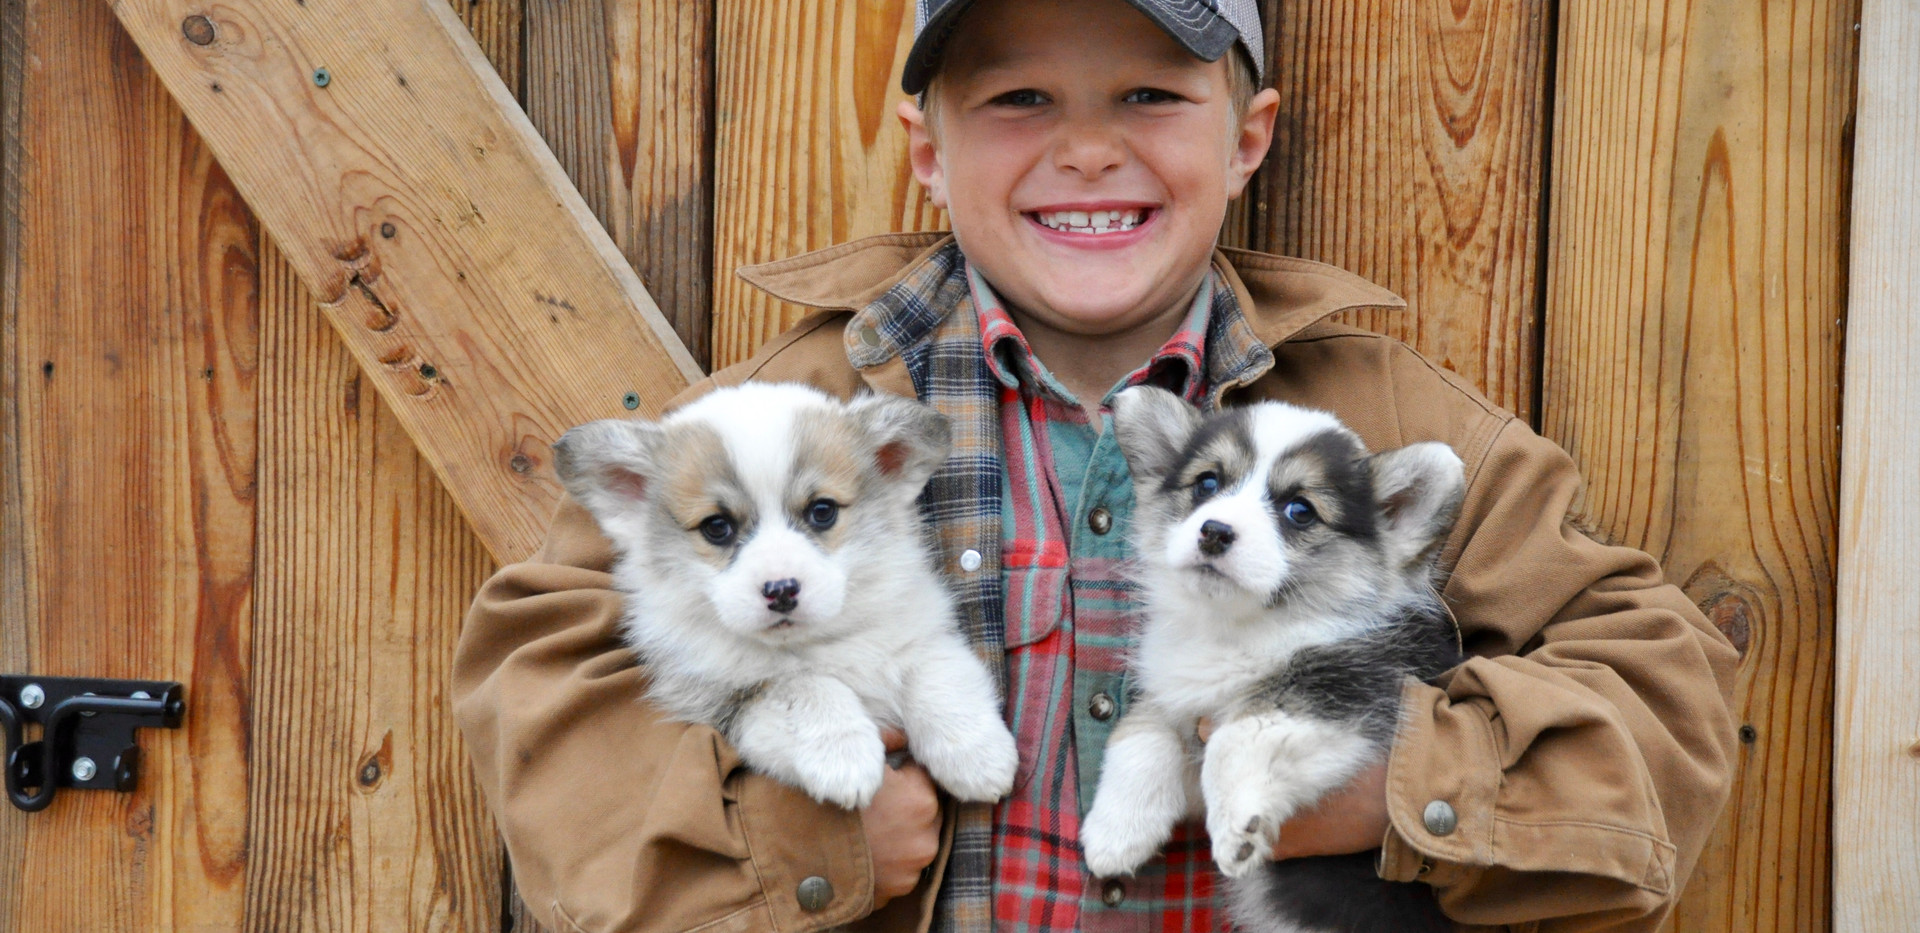 Miles with Dolly x Stetson Puppies